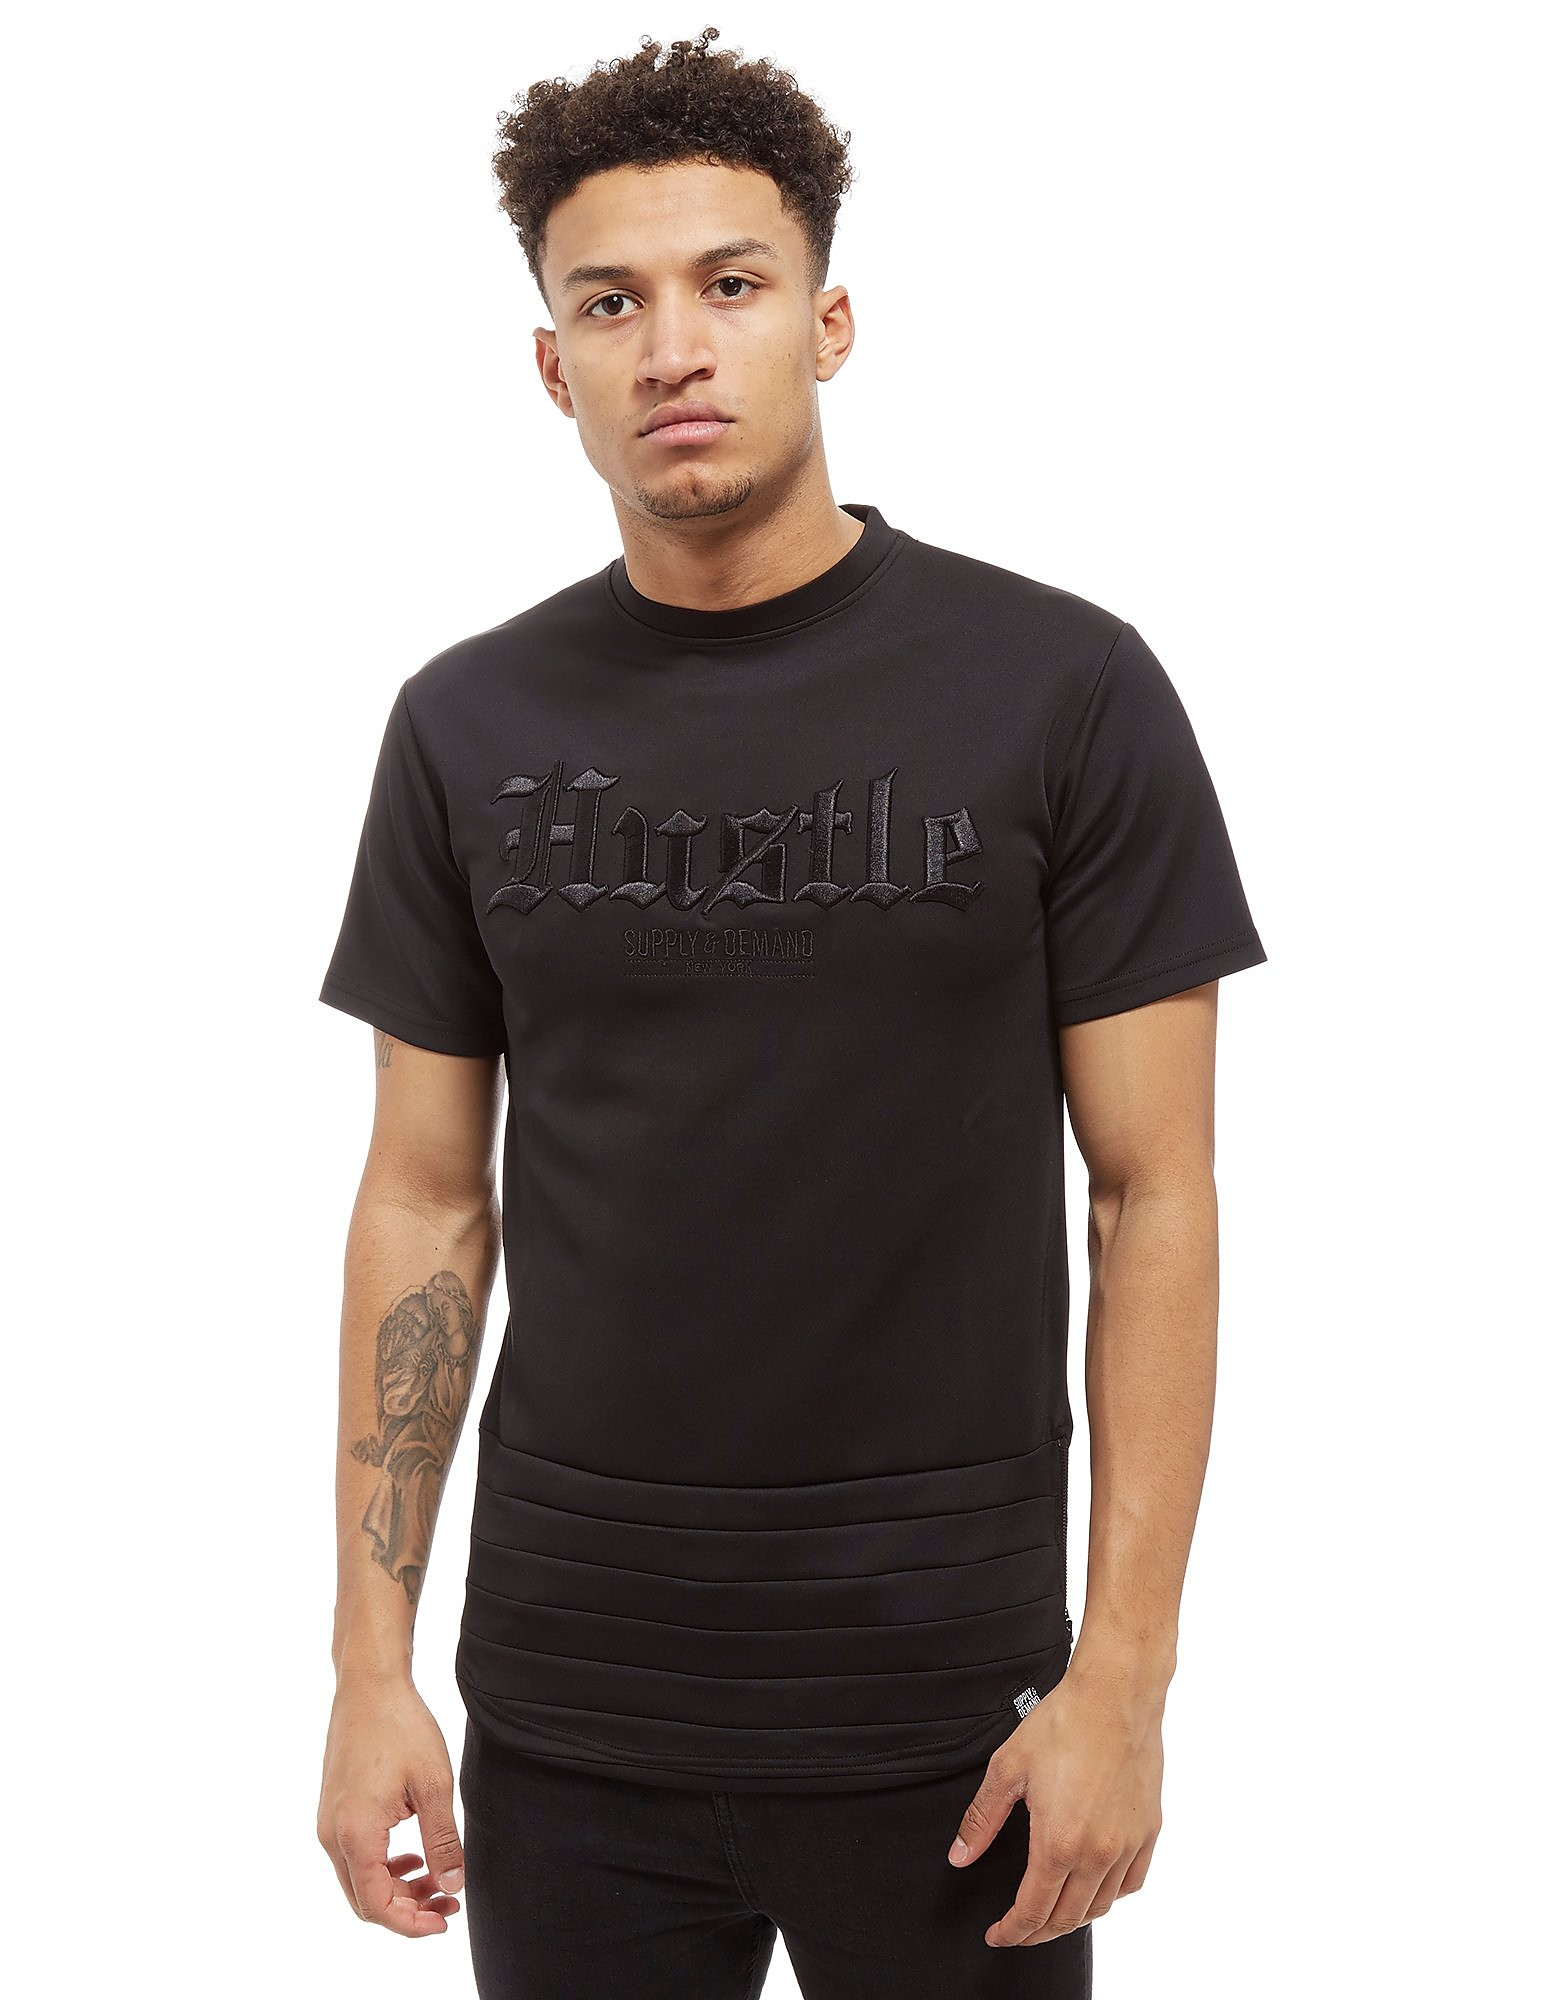 Supply & Demand camiseta Gothic Vamp